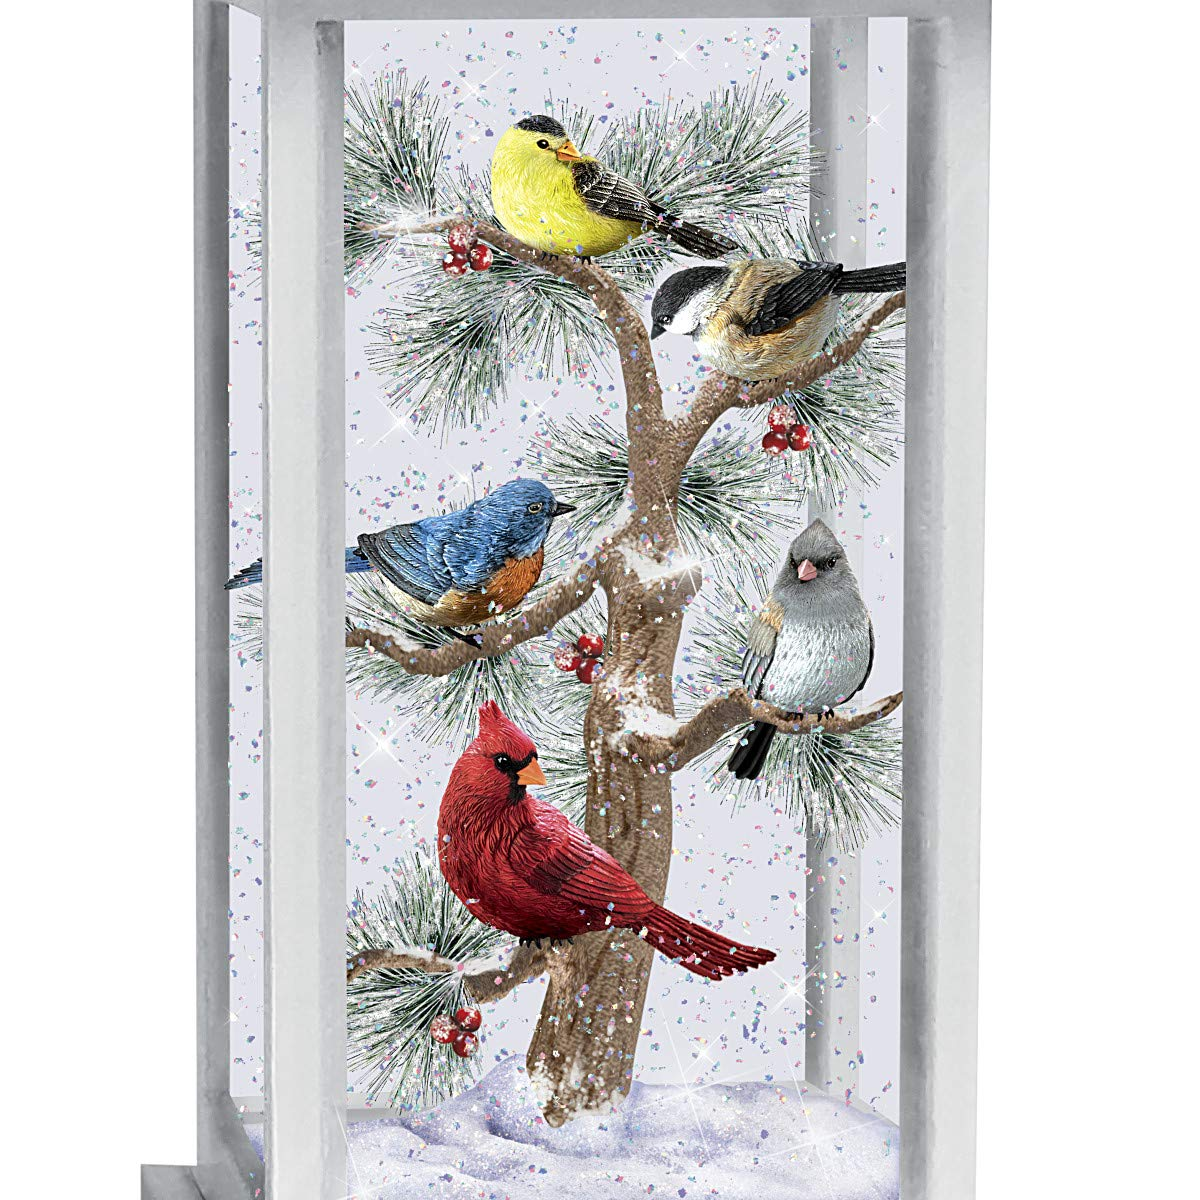 The Bradford Exchange Songs of The Season Illuminated Snowglobe Songbird Lantern